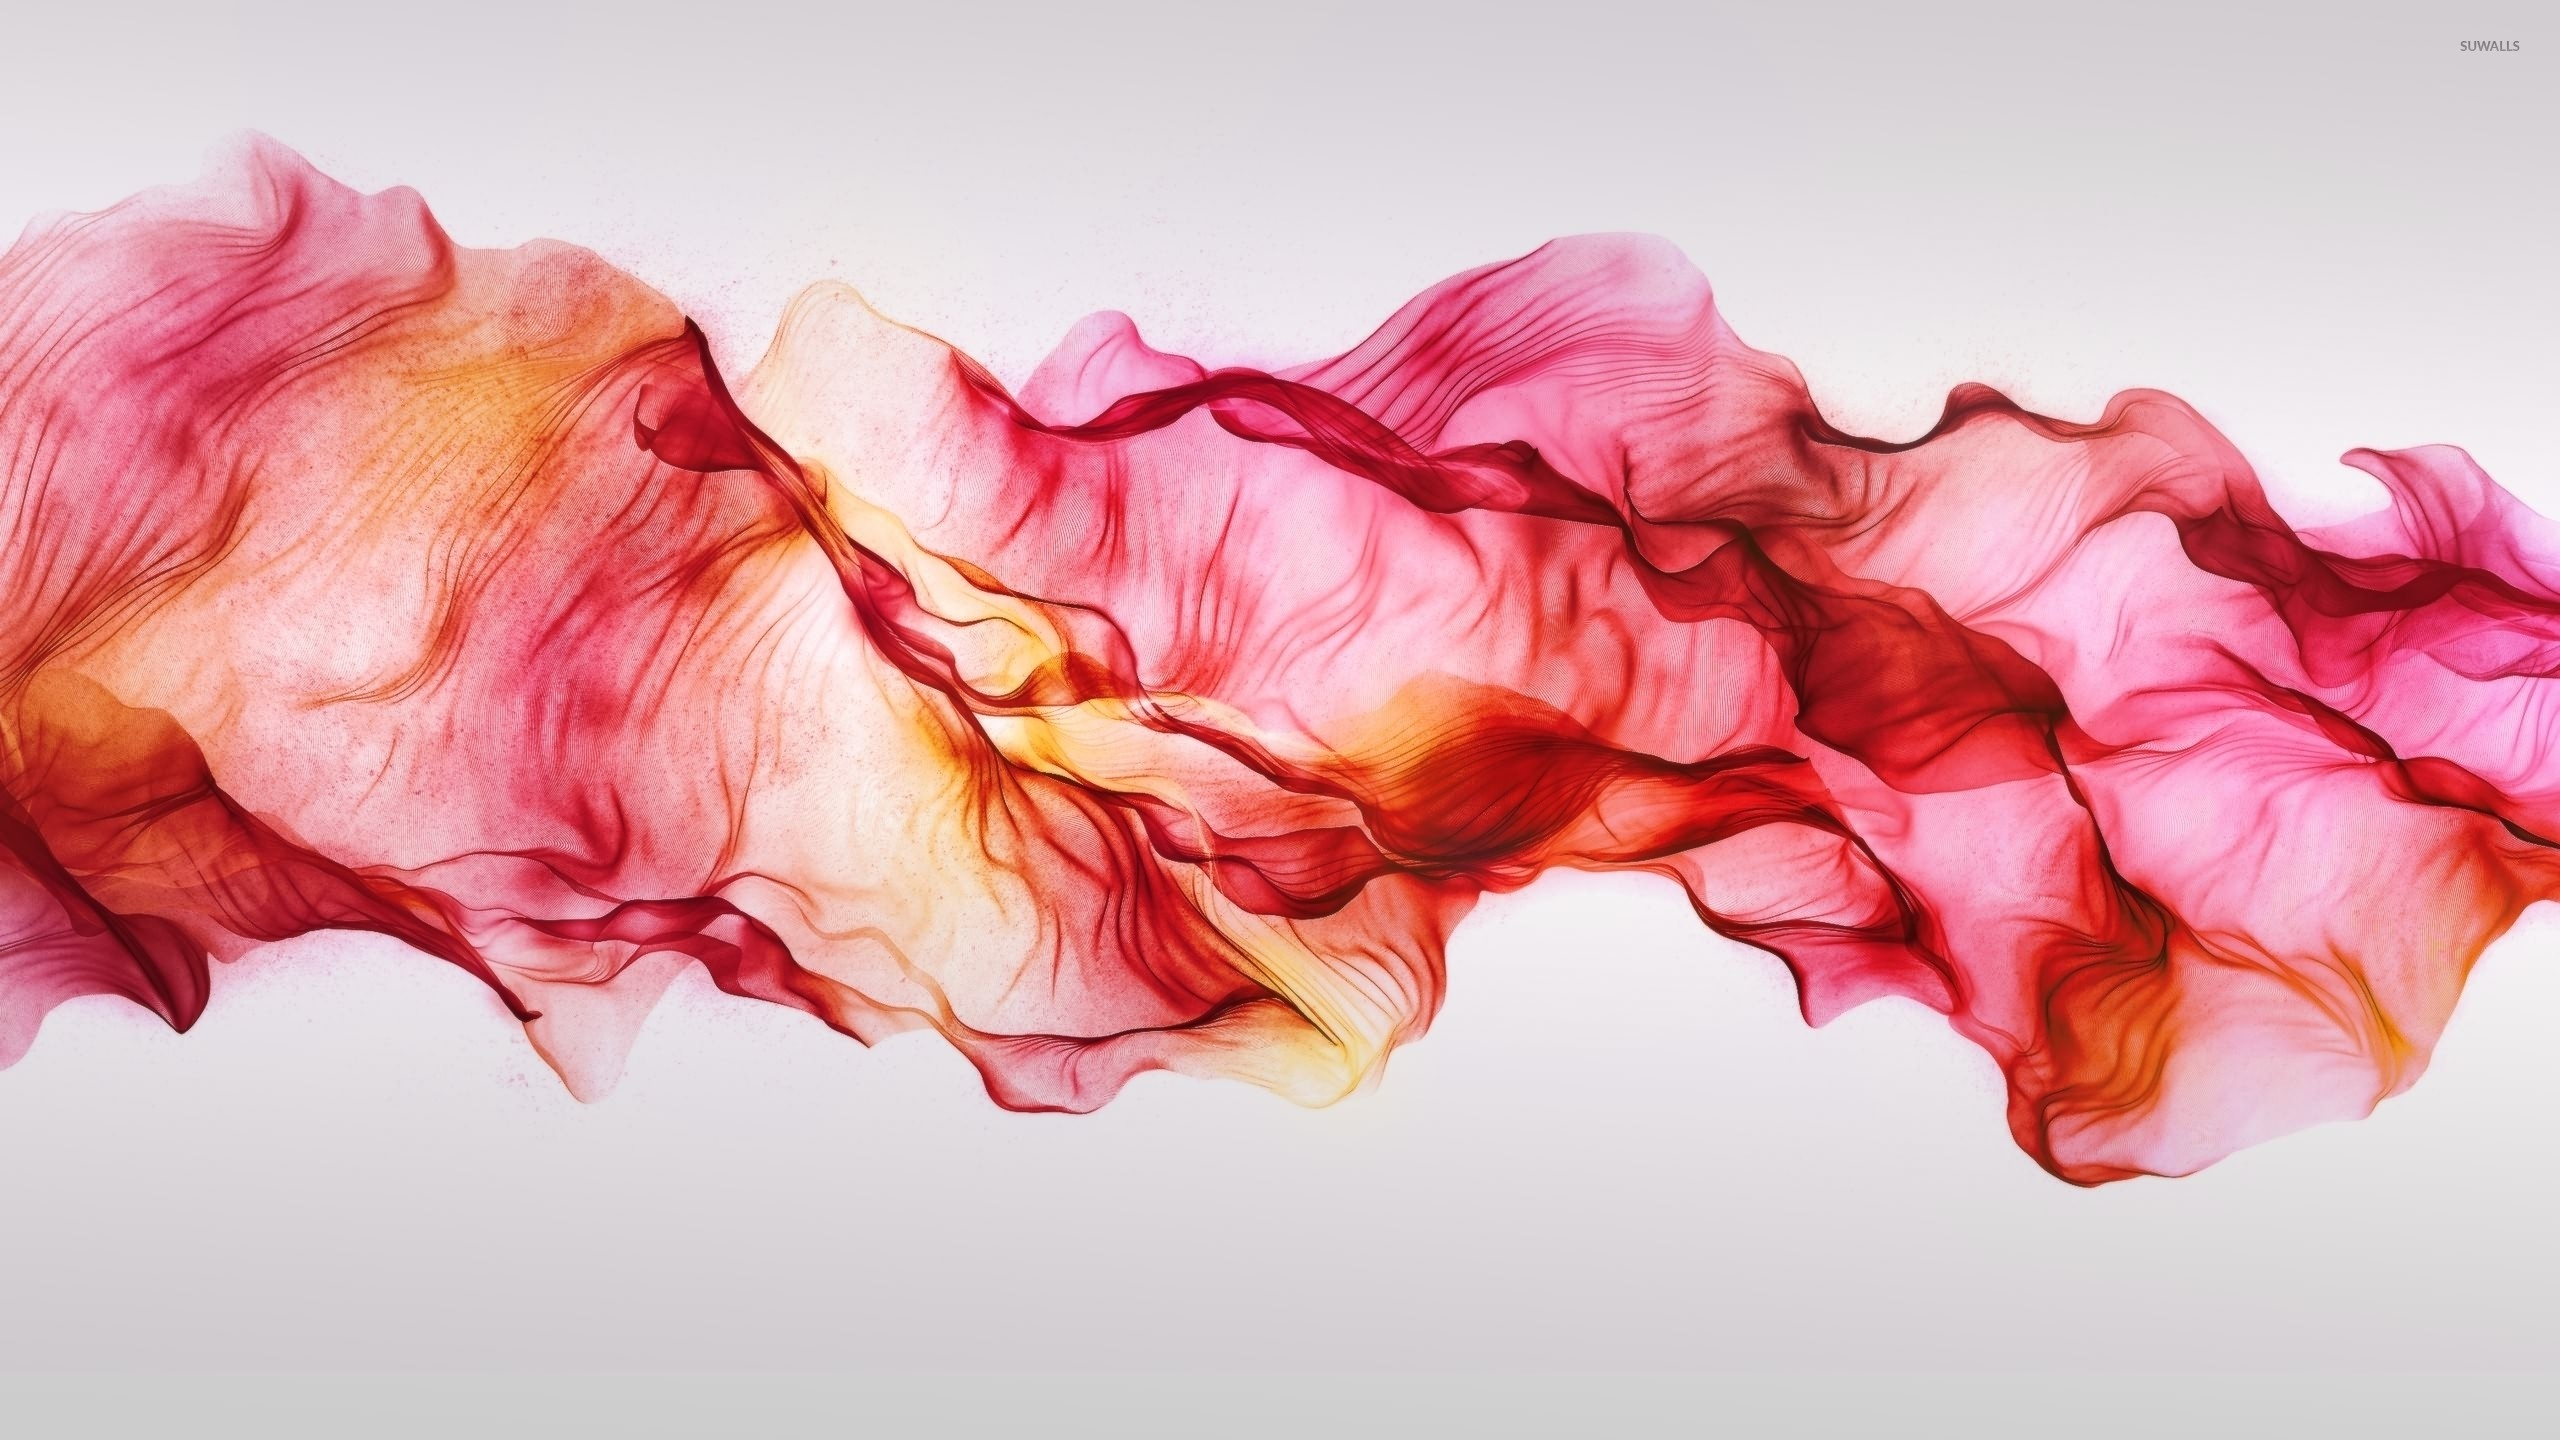 2560x1440 Red smoke mixing in the air wallpaper  jpg